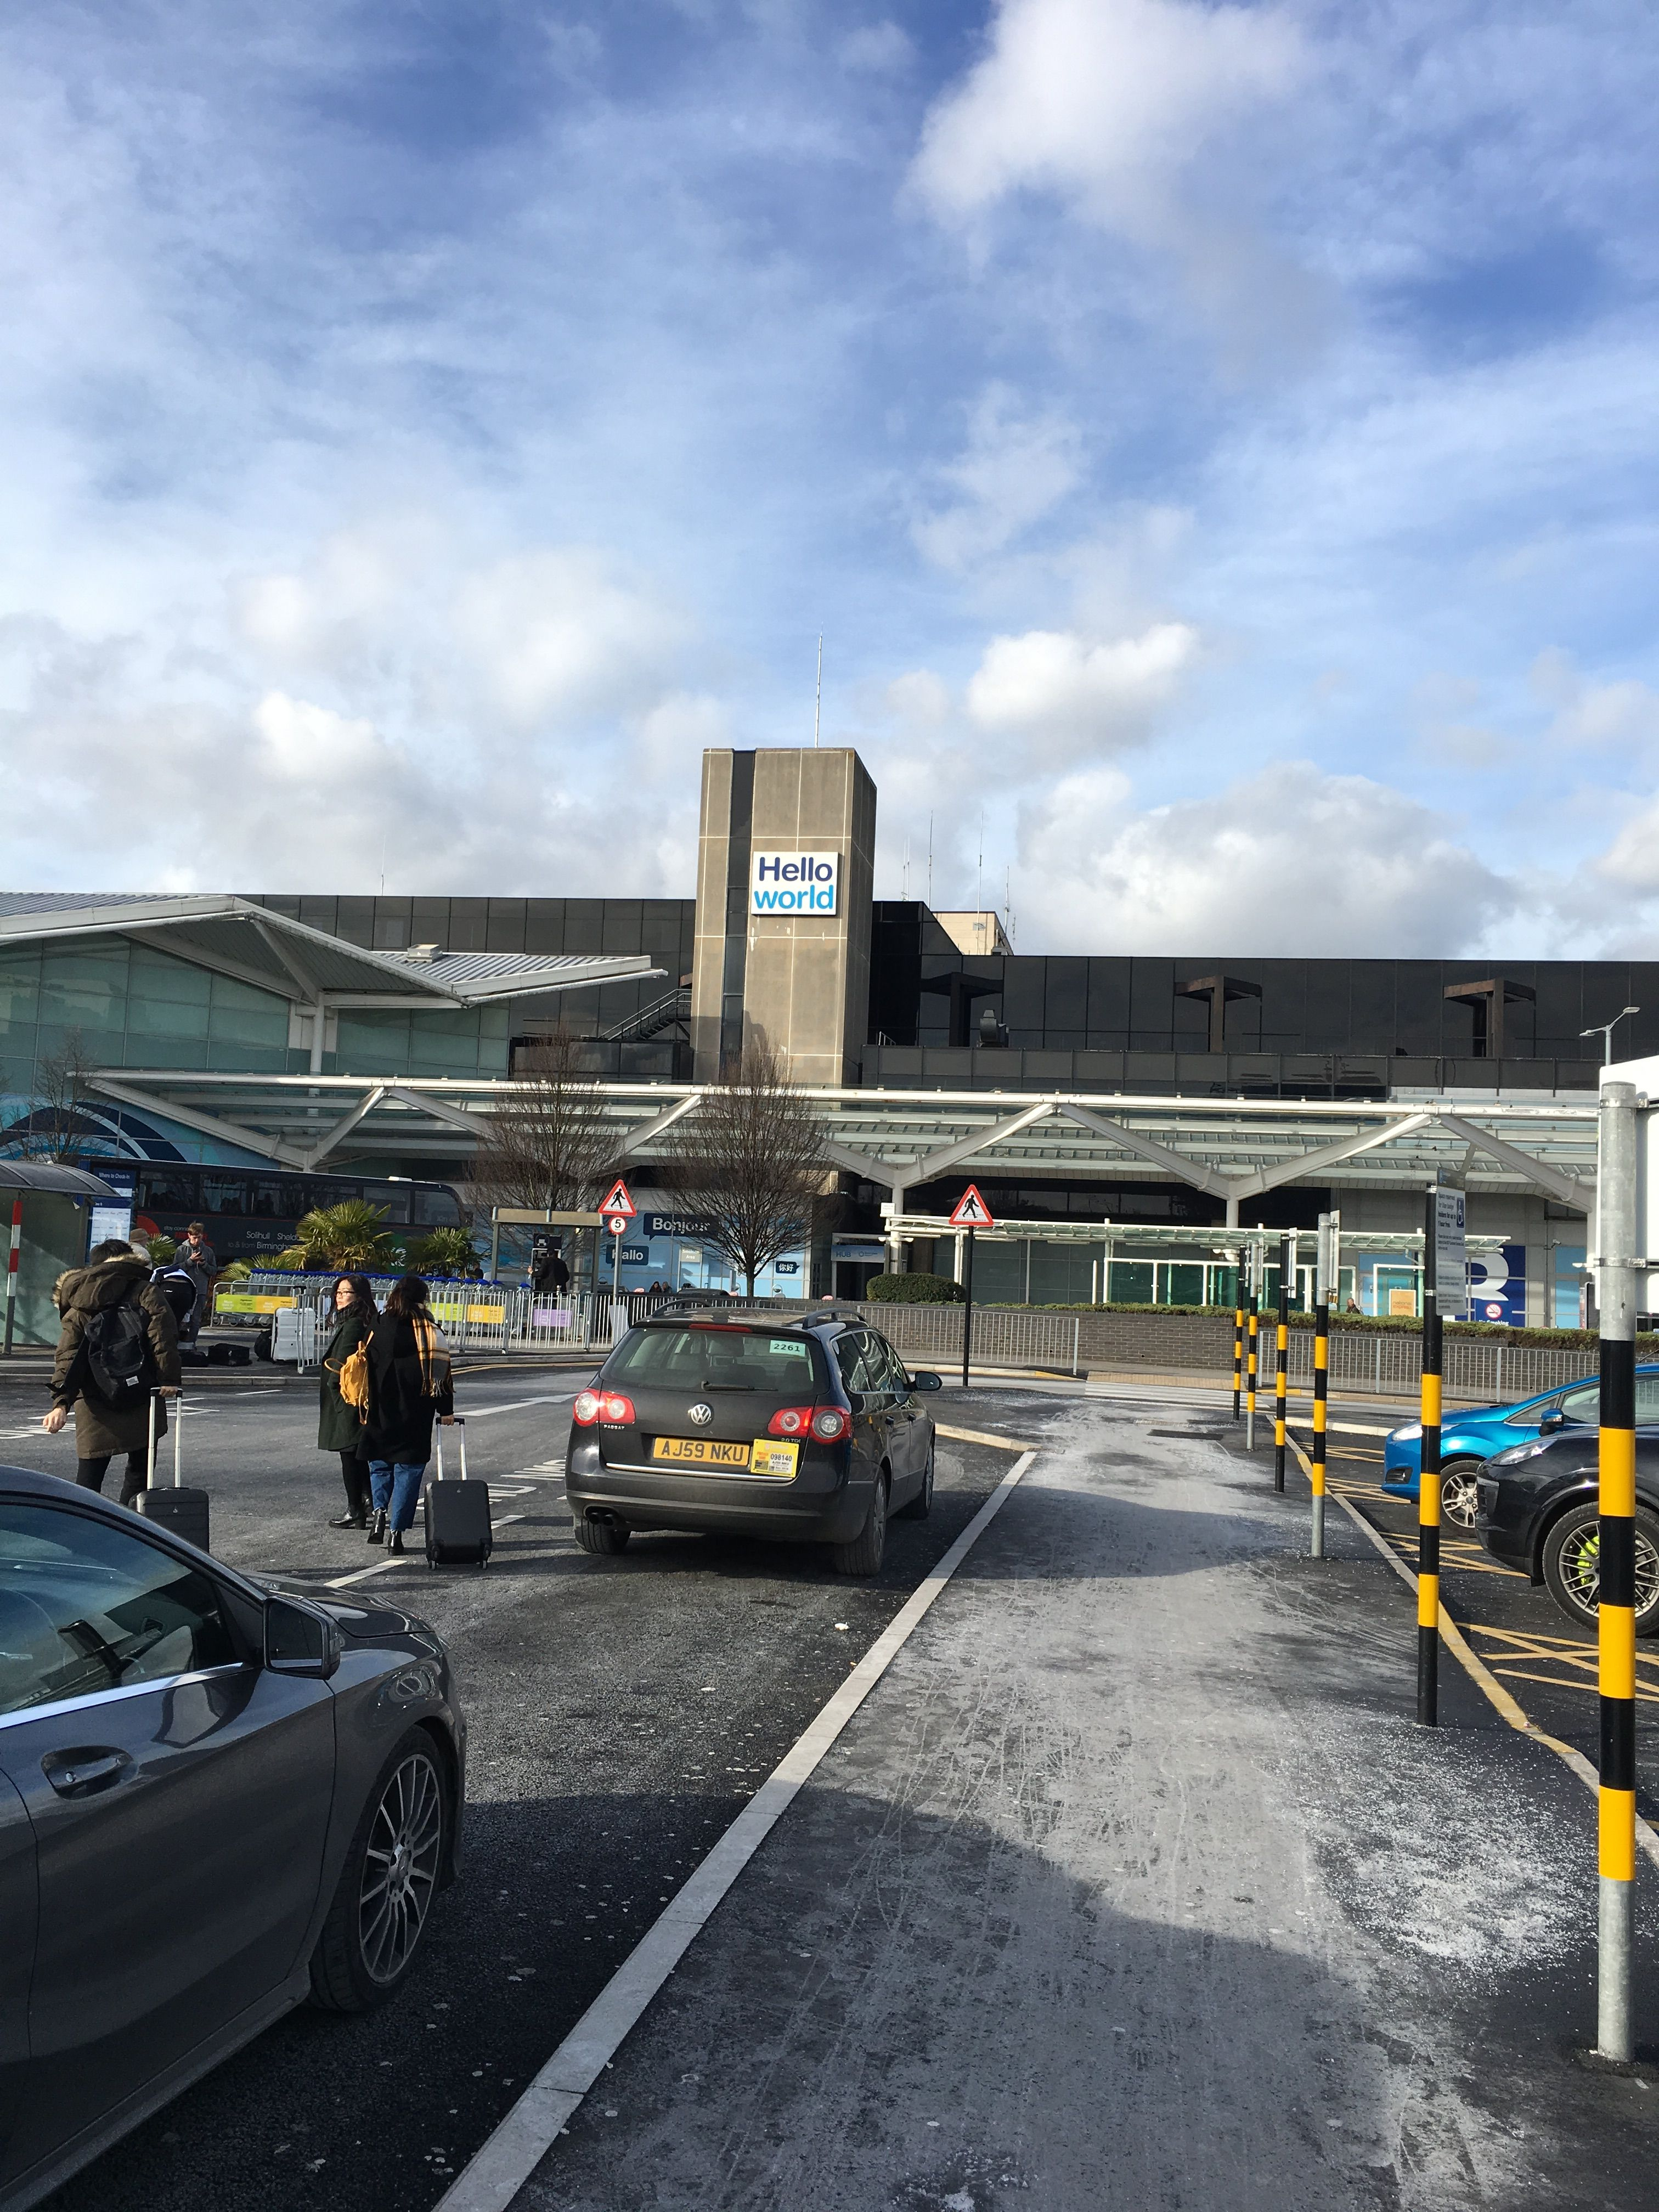 Birmingham Airport To Heathrow Airport Airport Taxis Birmingham